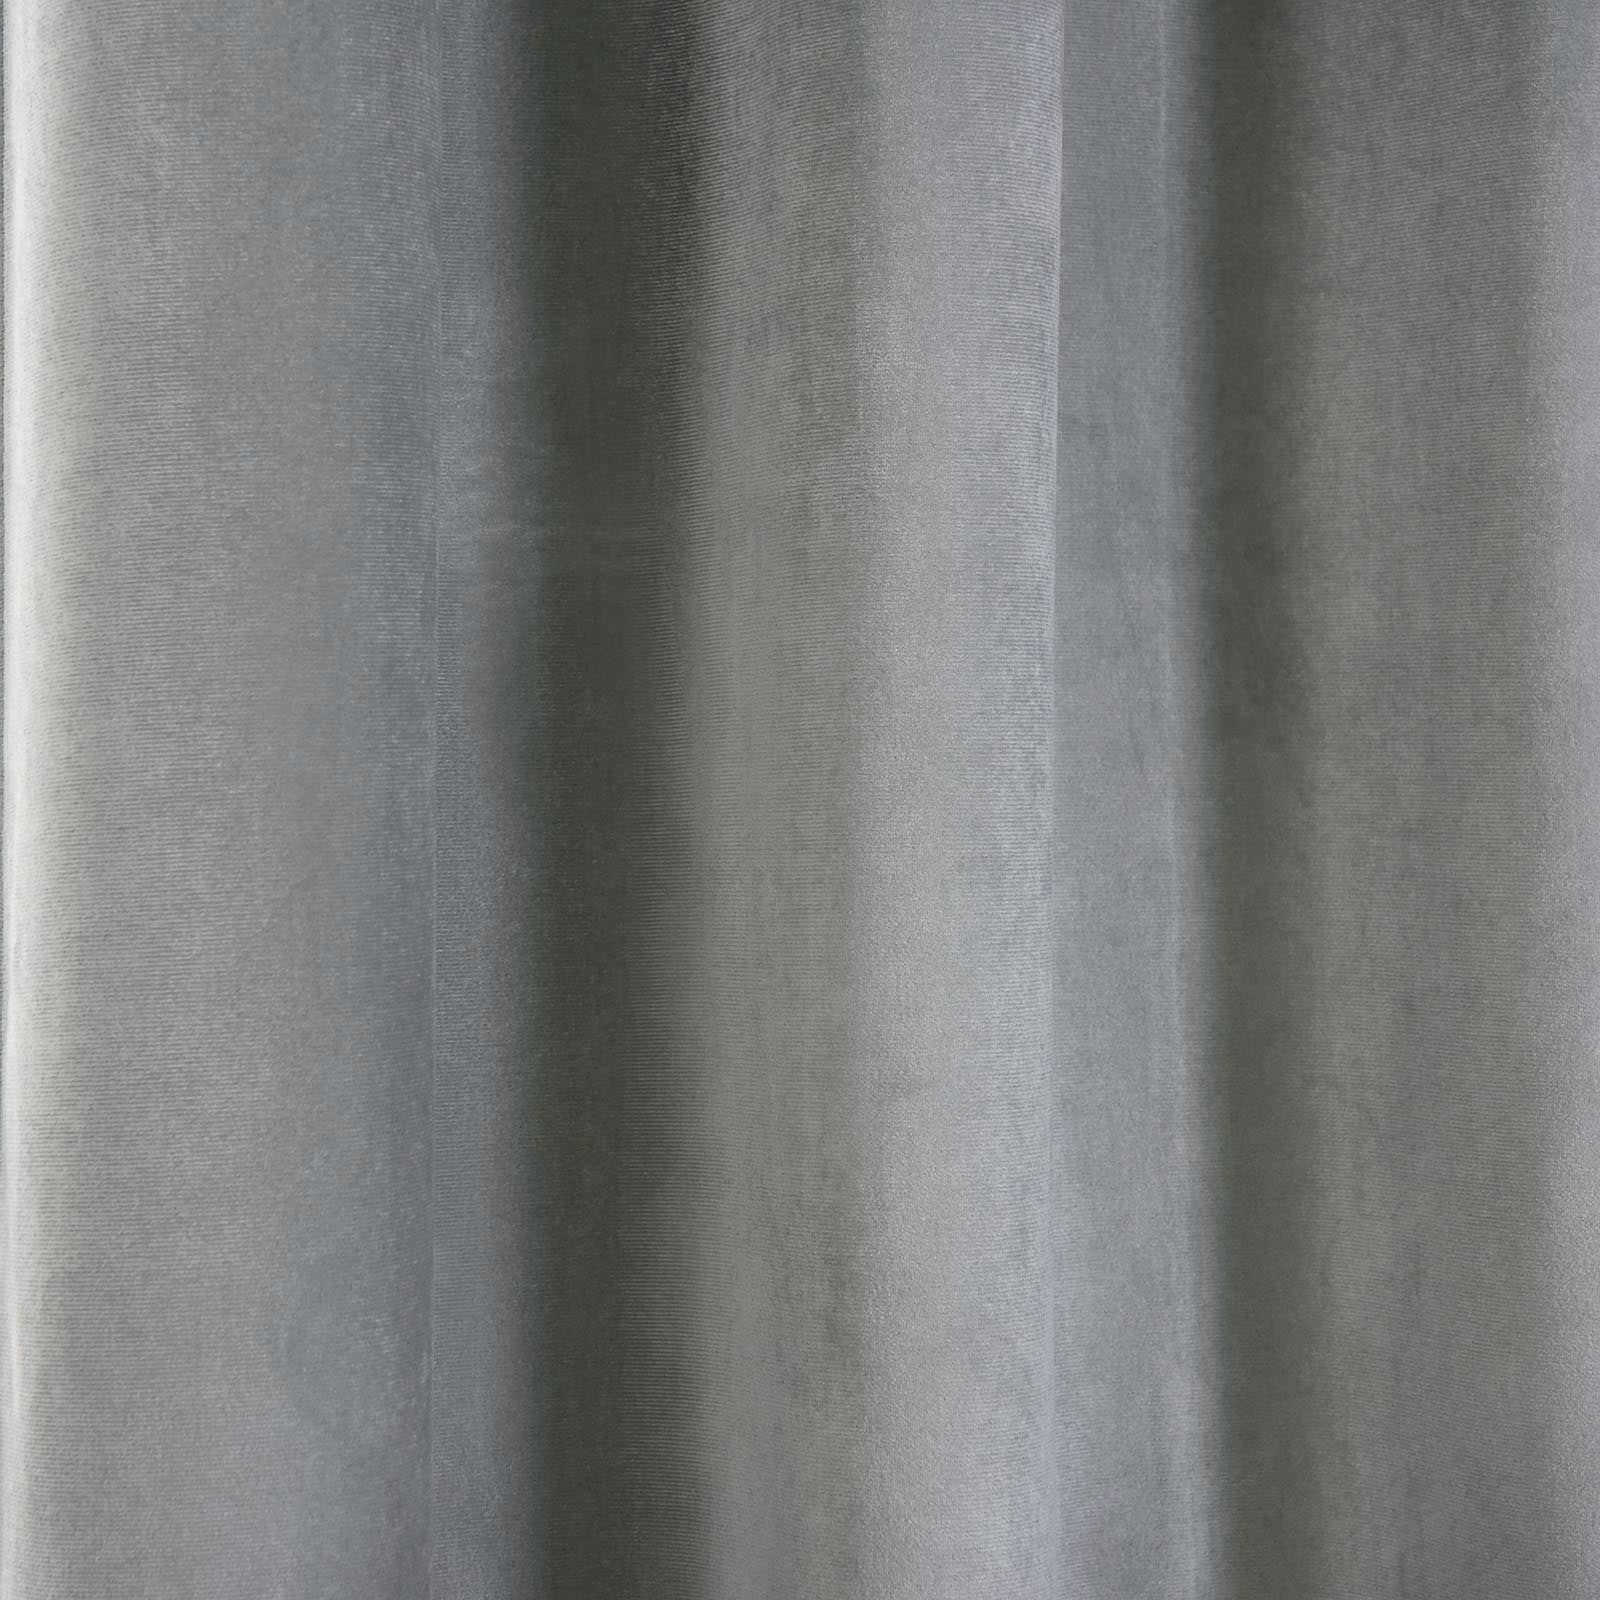 Silver Blackout Curtains 2 Packs 52 X 64 Inch Grommet